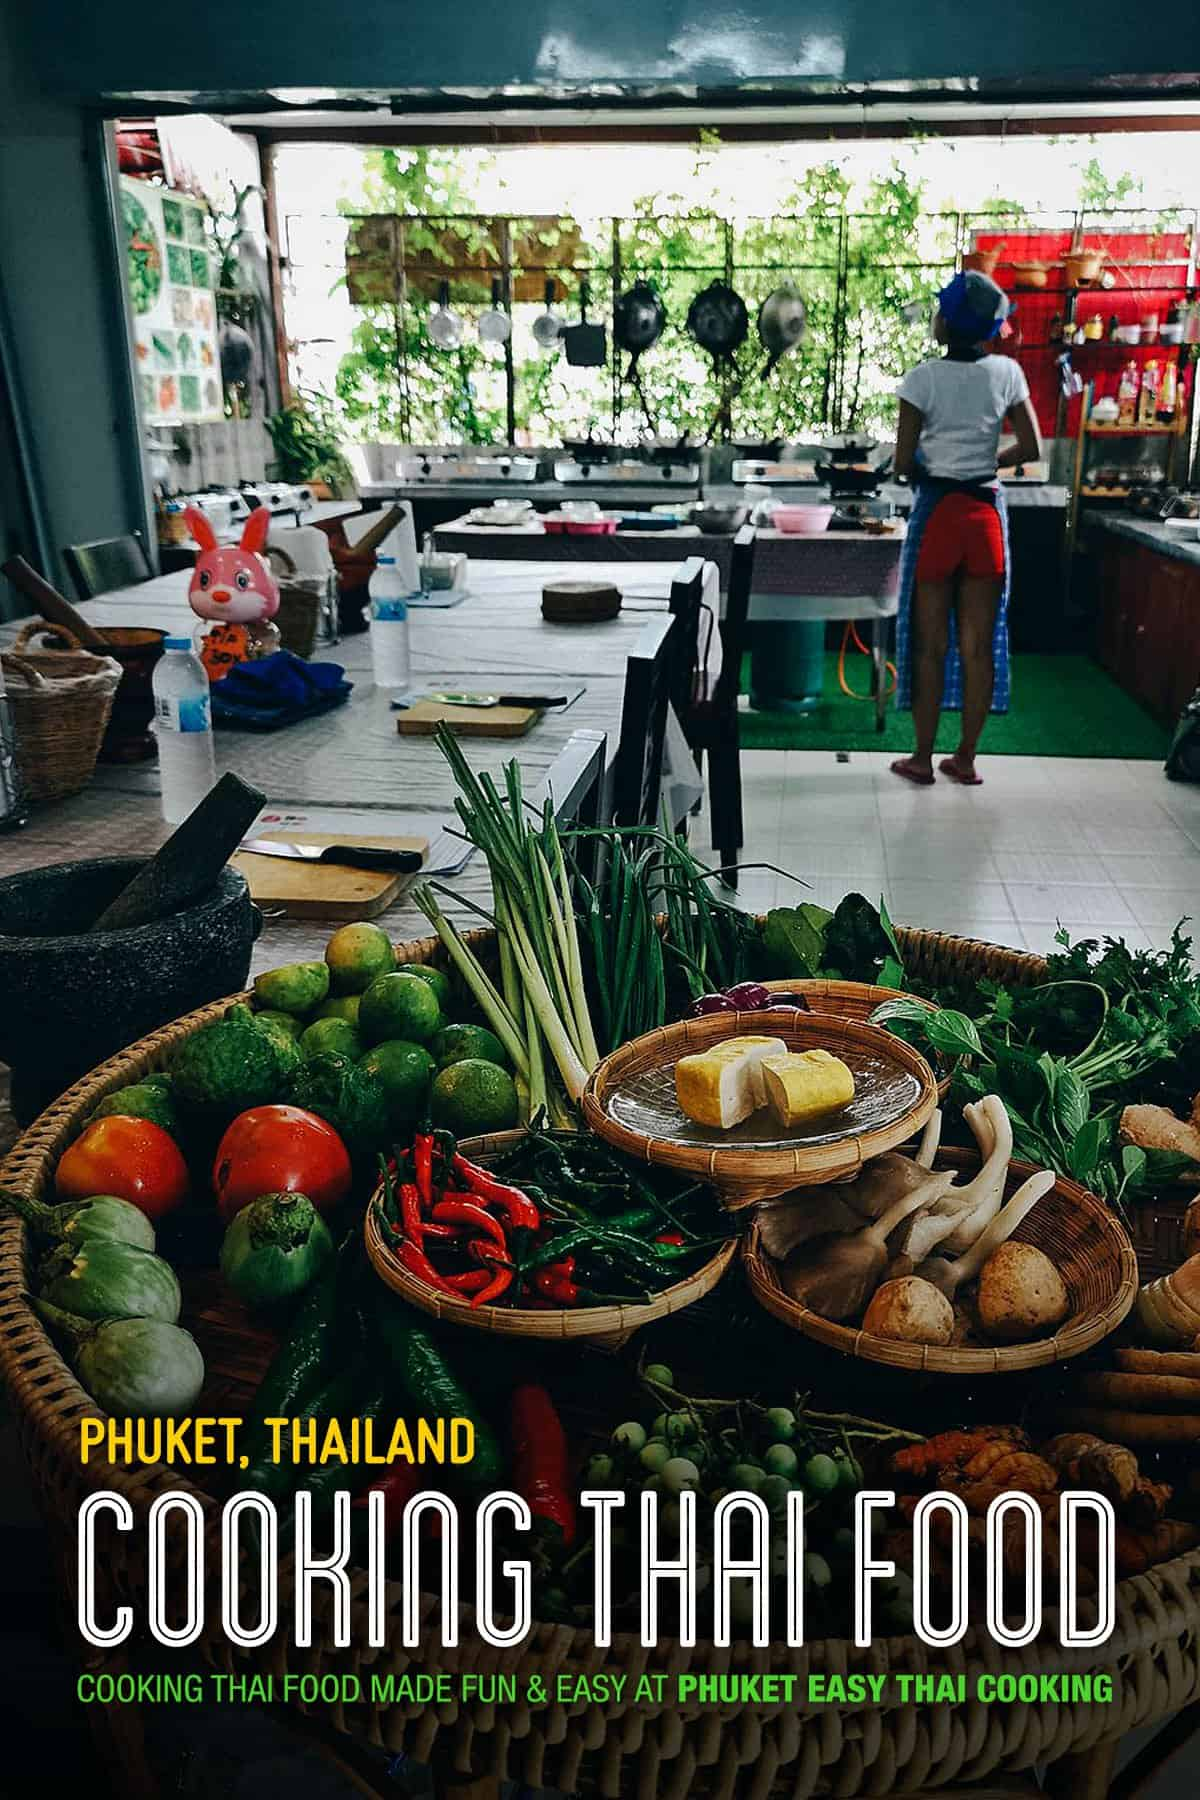 Phuket Easy Thai Cooking